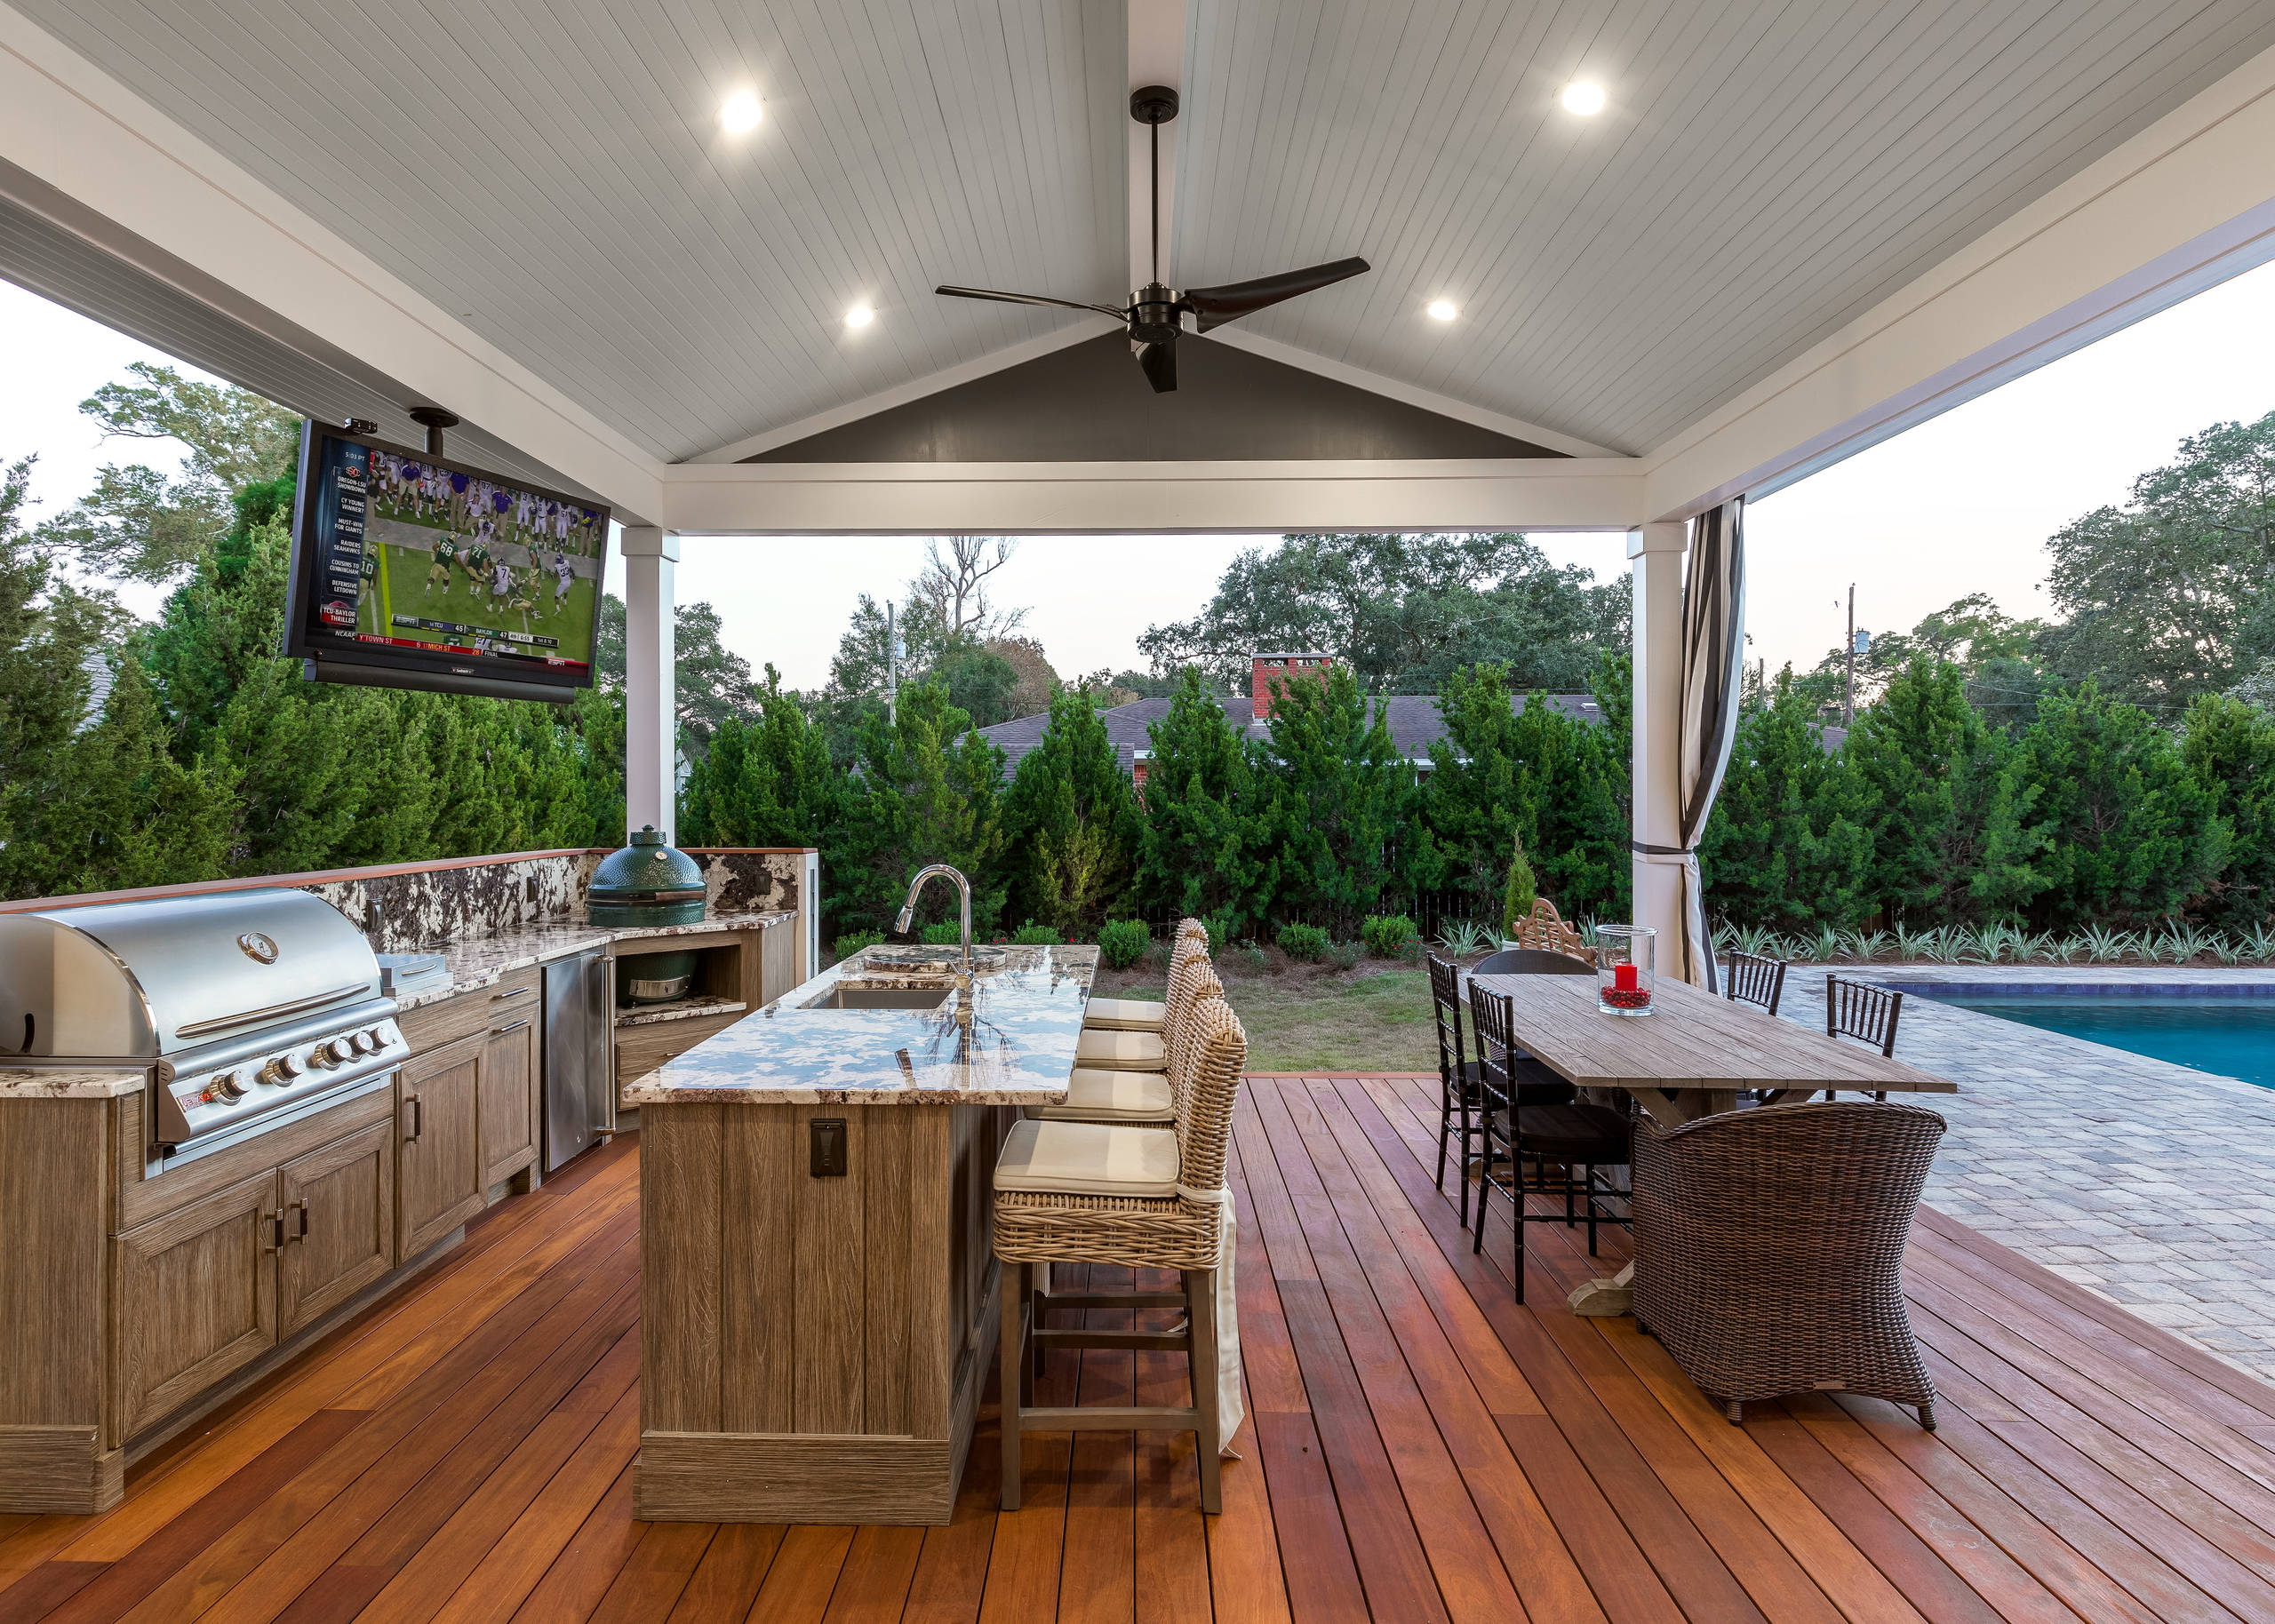 75 Beautiful Outdoor Kitchen Design Pictures Ideas November 2020 Houzz